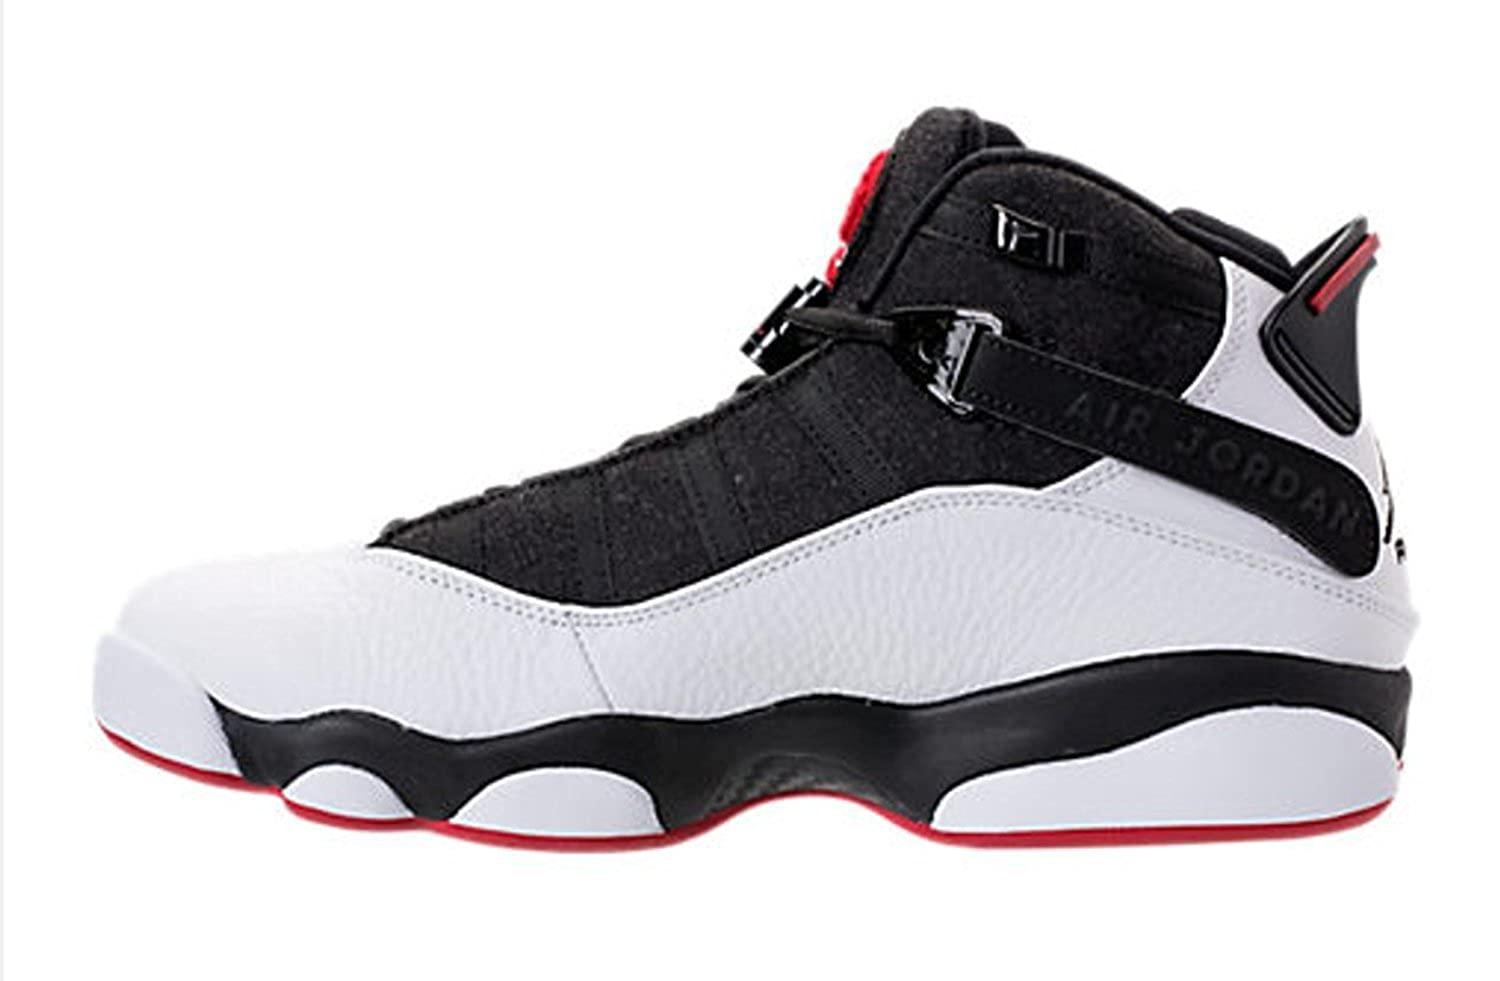 2a5402ad750bc Amazon.com | Jordan Men's 6 Rings Basketball Shoes 322992-012 | Basketball